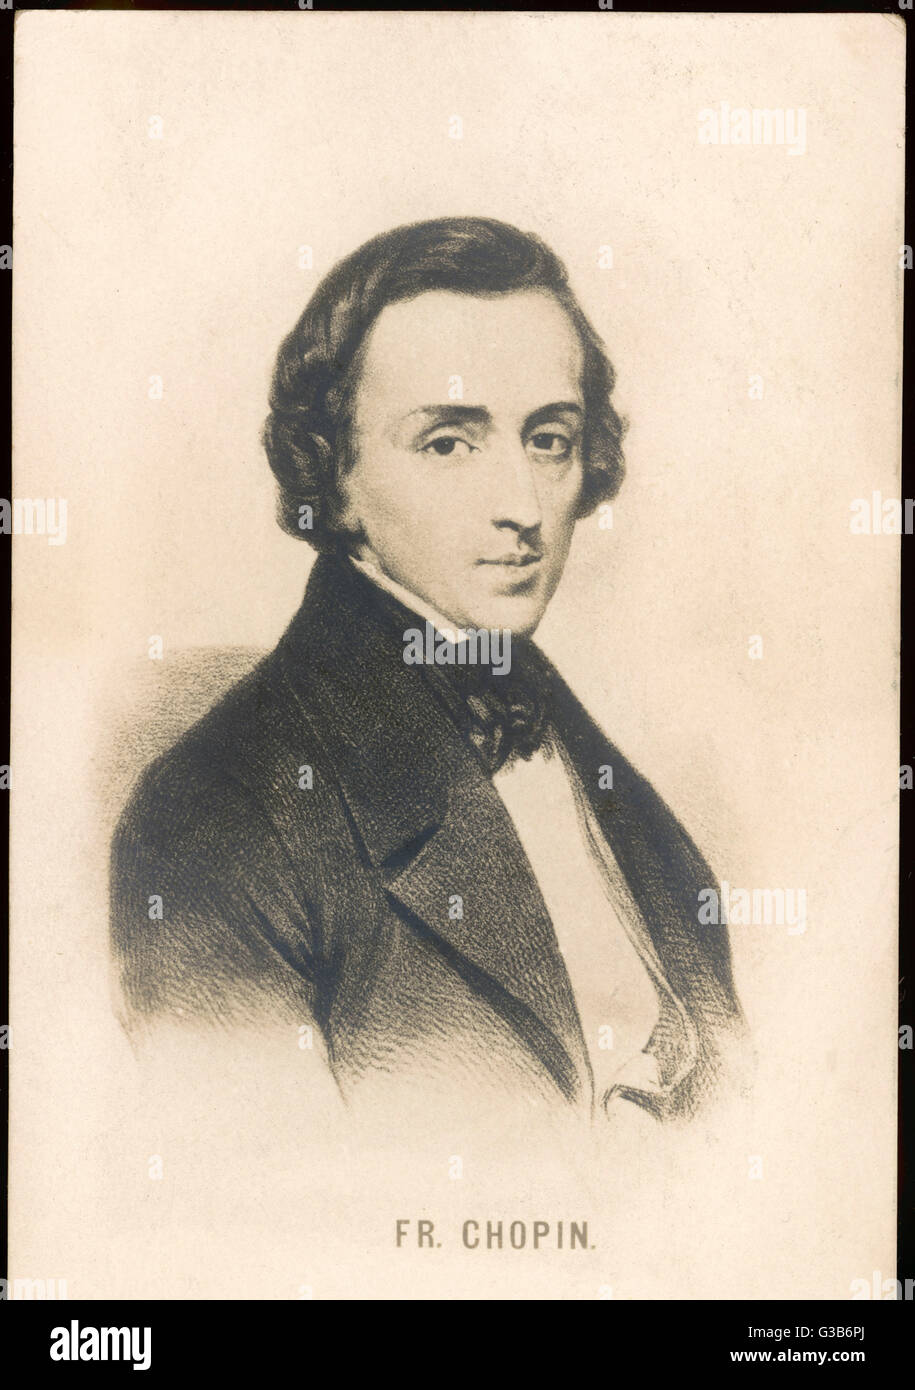 FREDERIC CHOPIN  Polish composer        Date: 19th century - Stock Image